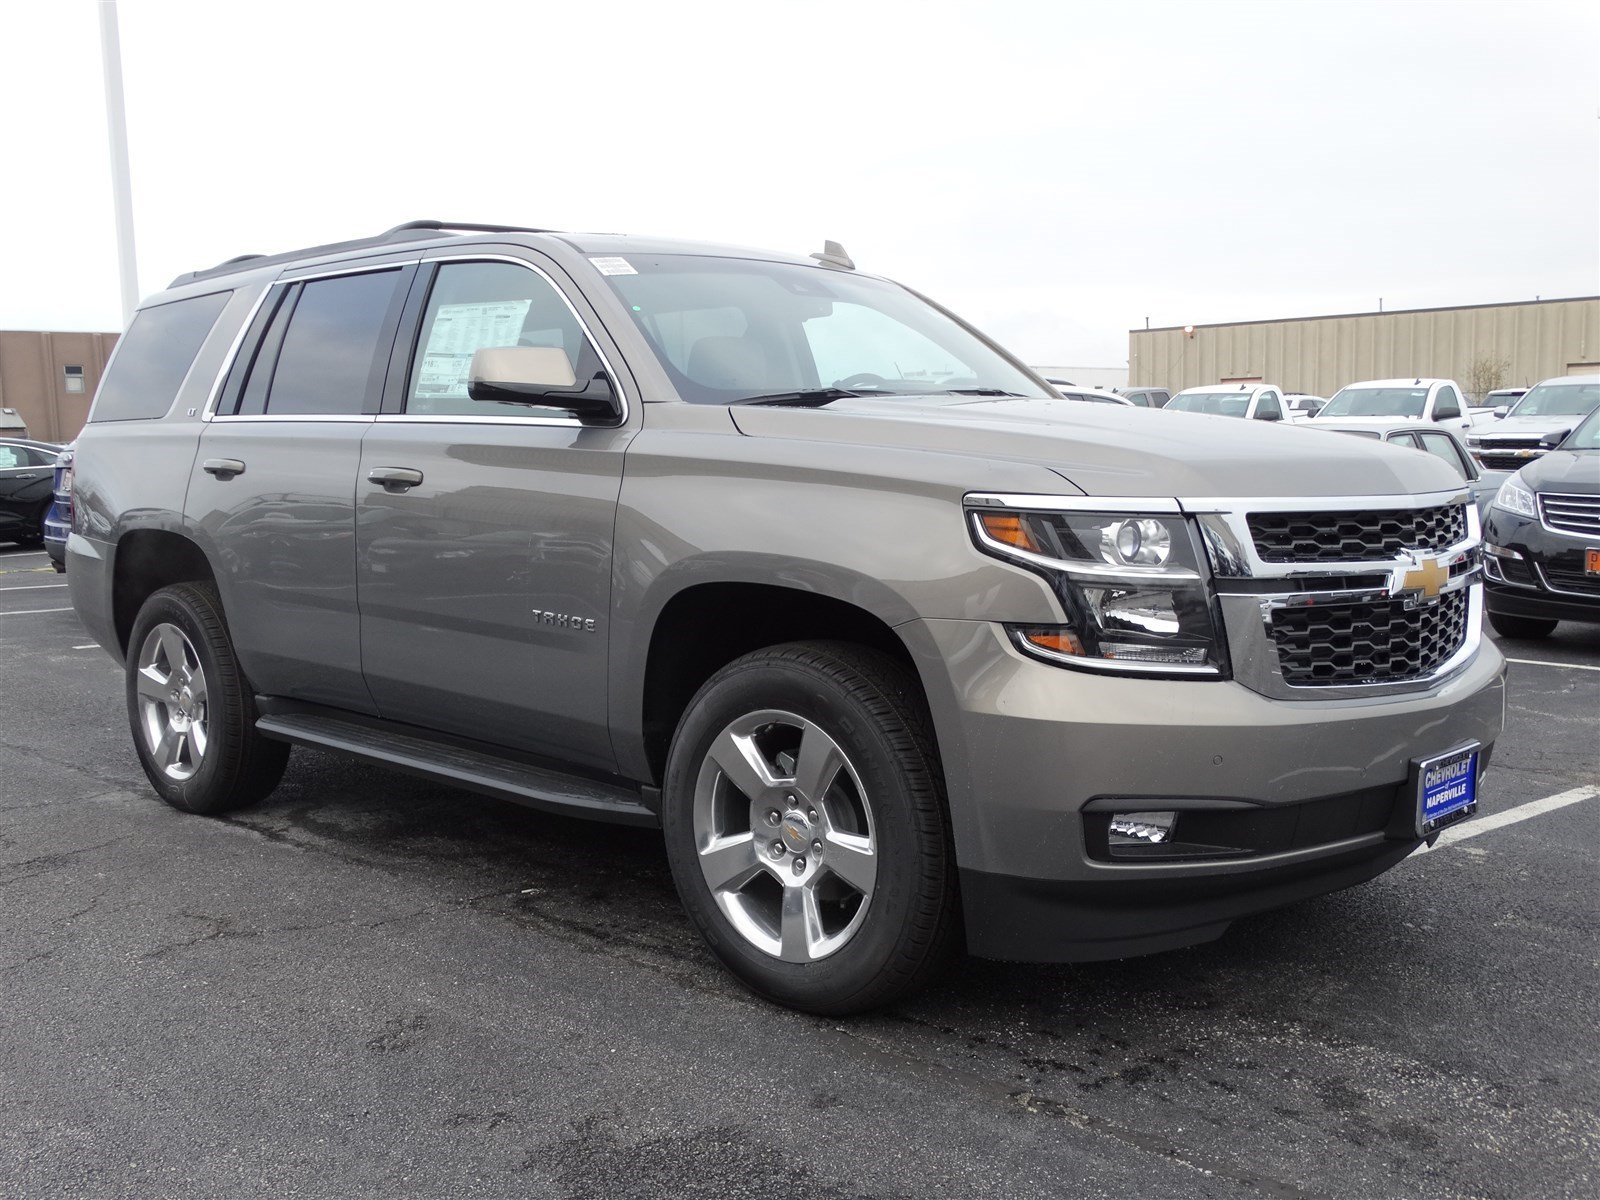 new 2017 chevrolet tahoe lt sport utility in naperville t5997 chevrolet of naperville. Black Bedroom Furniture Sets. Home Design Ideas